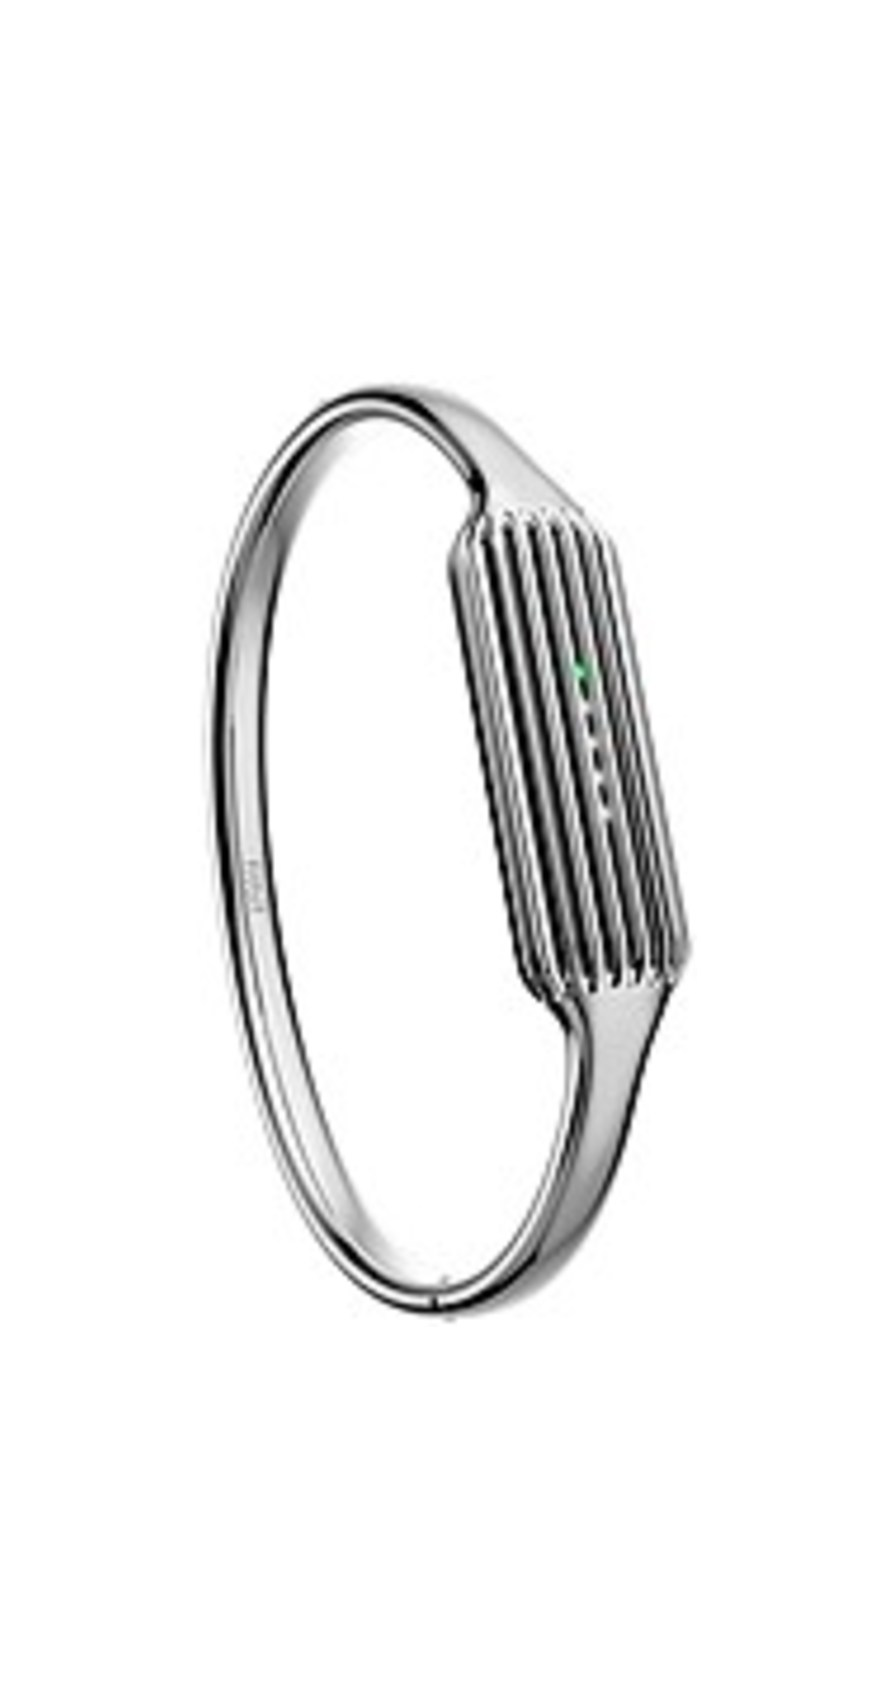 Fitbit FB161MBSRS Bangle for Flex 2 Fitness Tracker - Small - Silver